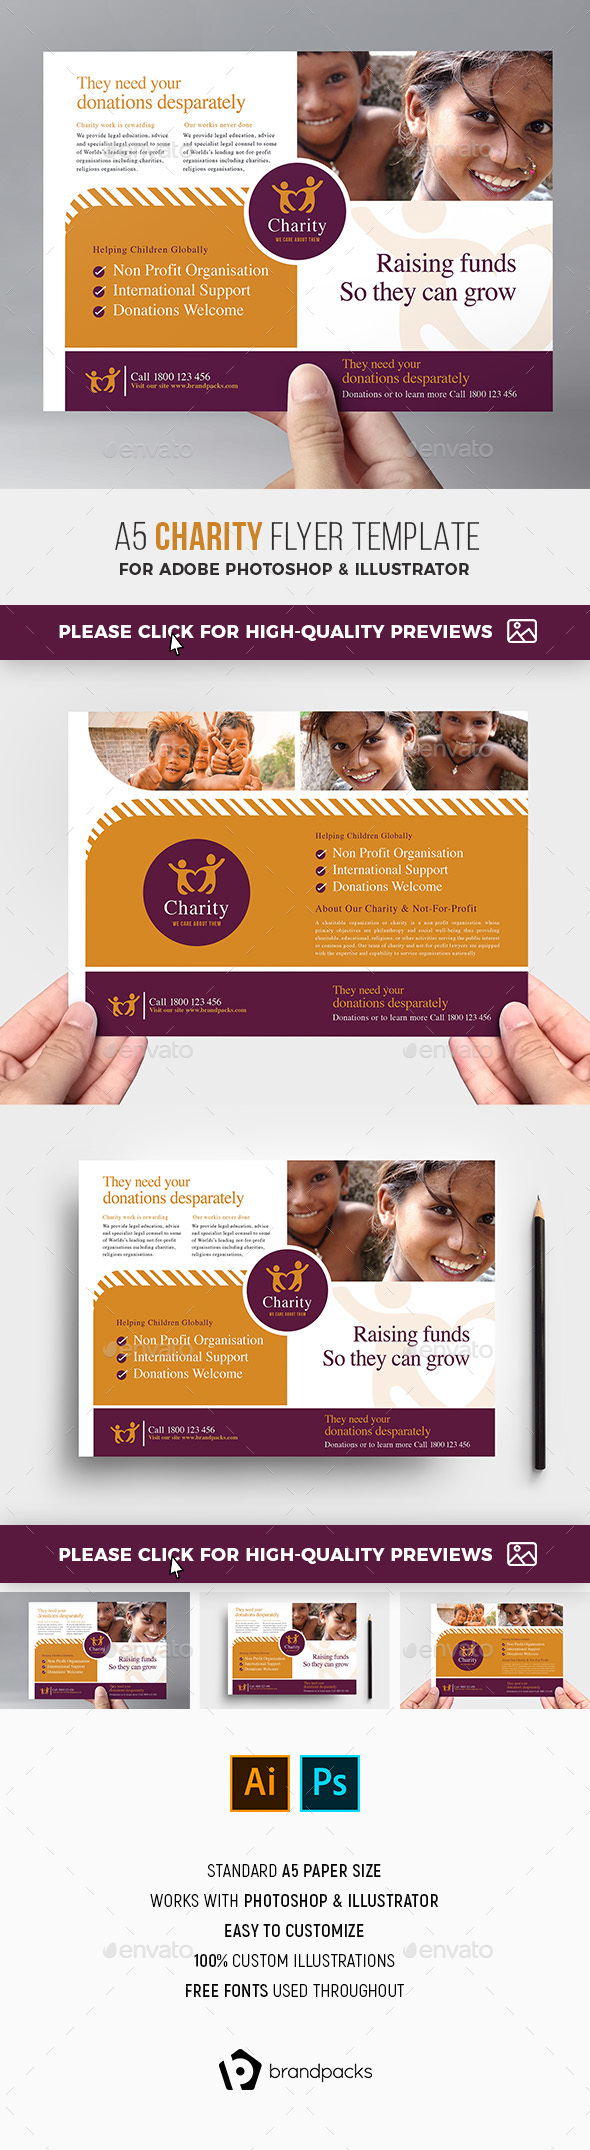 Charity Flyer Template - Corporate Flyers